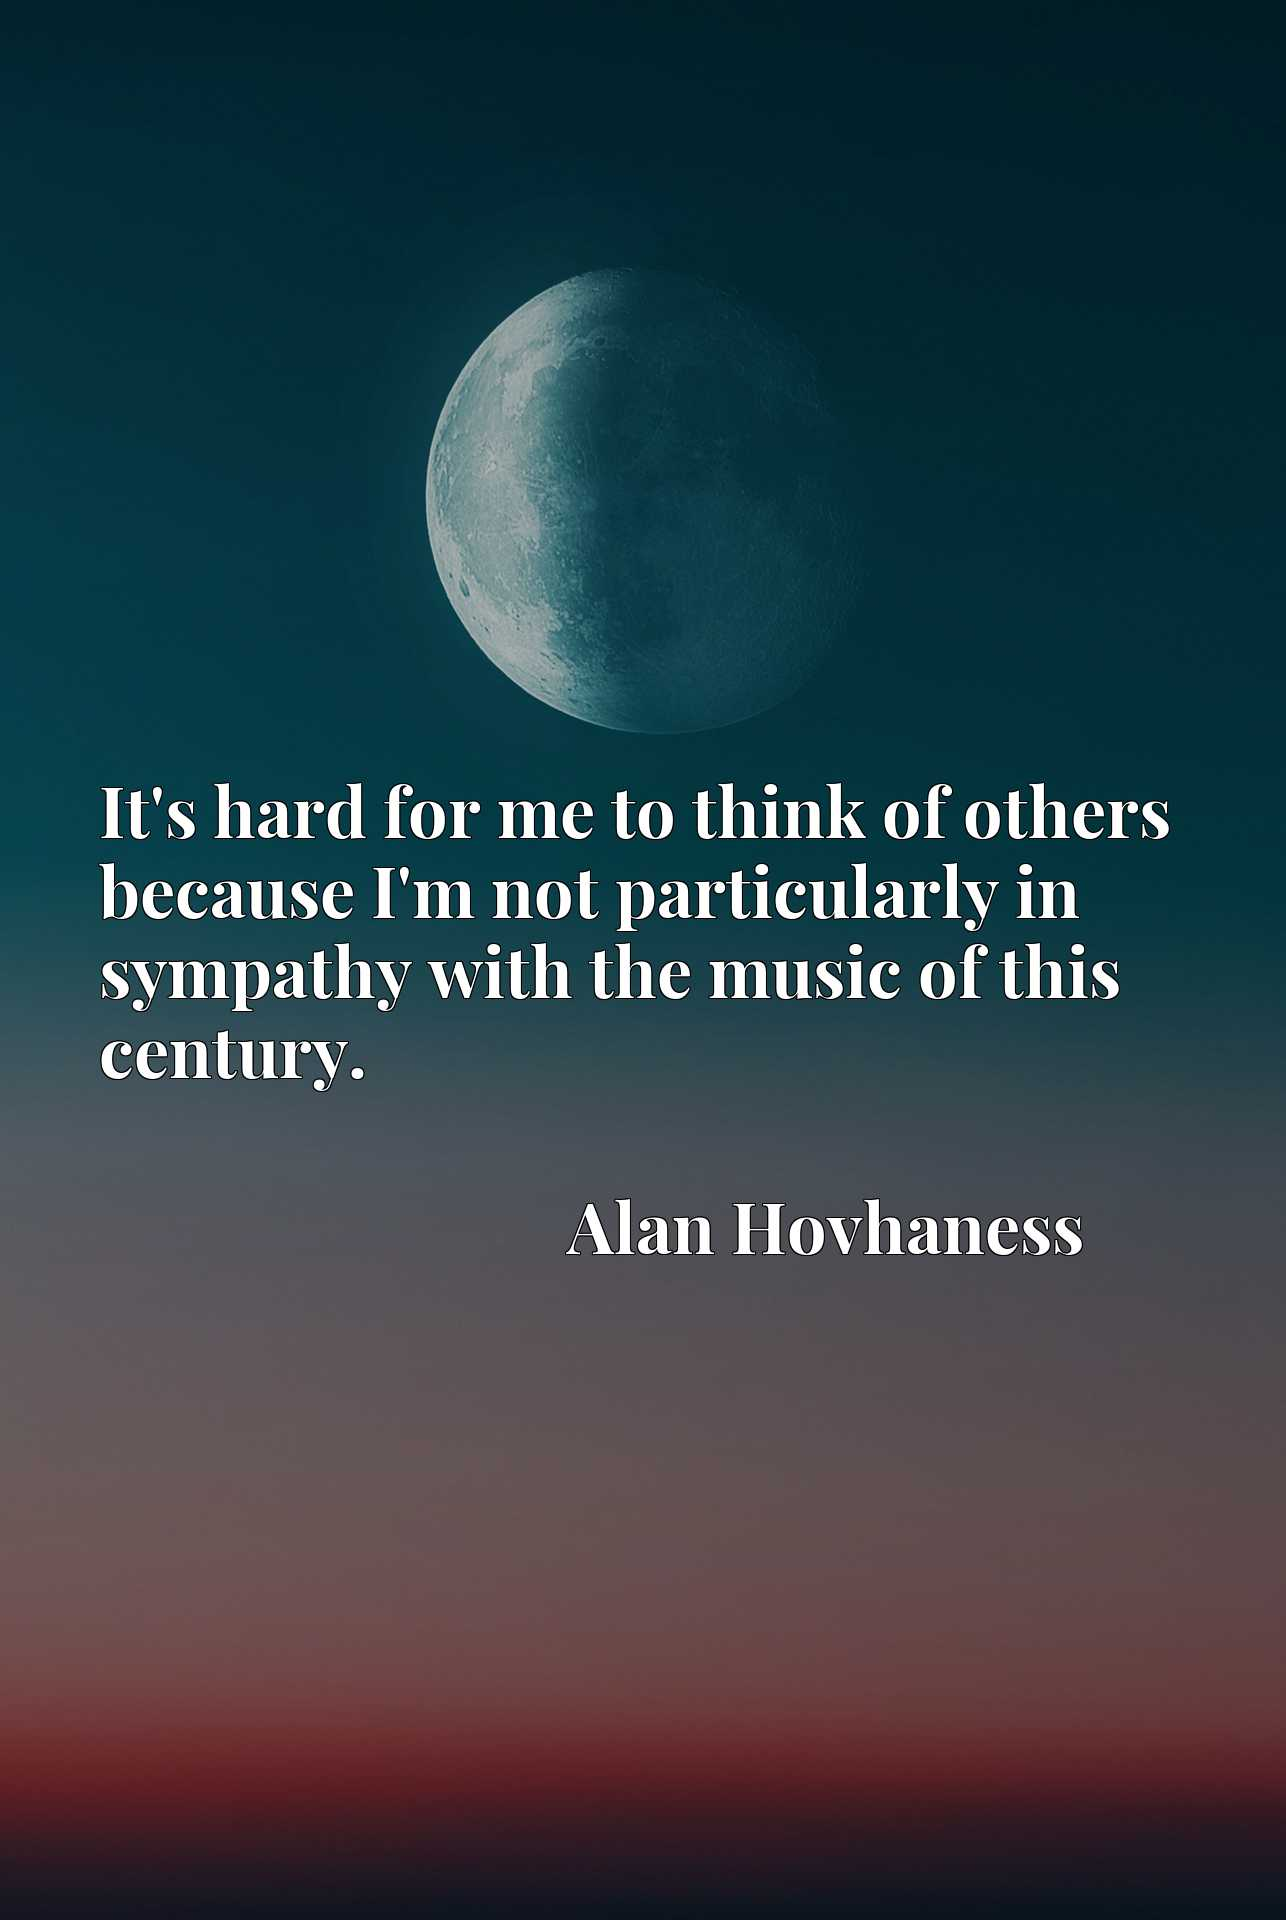 Quote Picture :It's hard for me to think of others because I'm not particularly in sympathy with the music of this century.